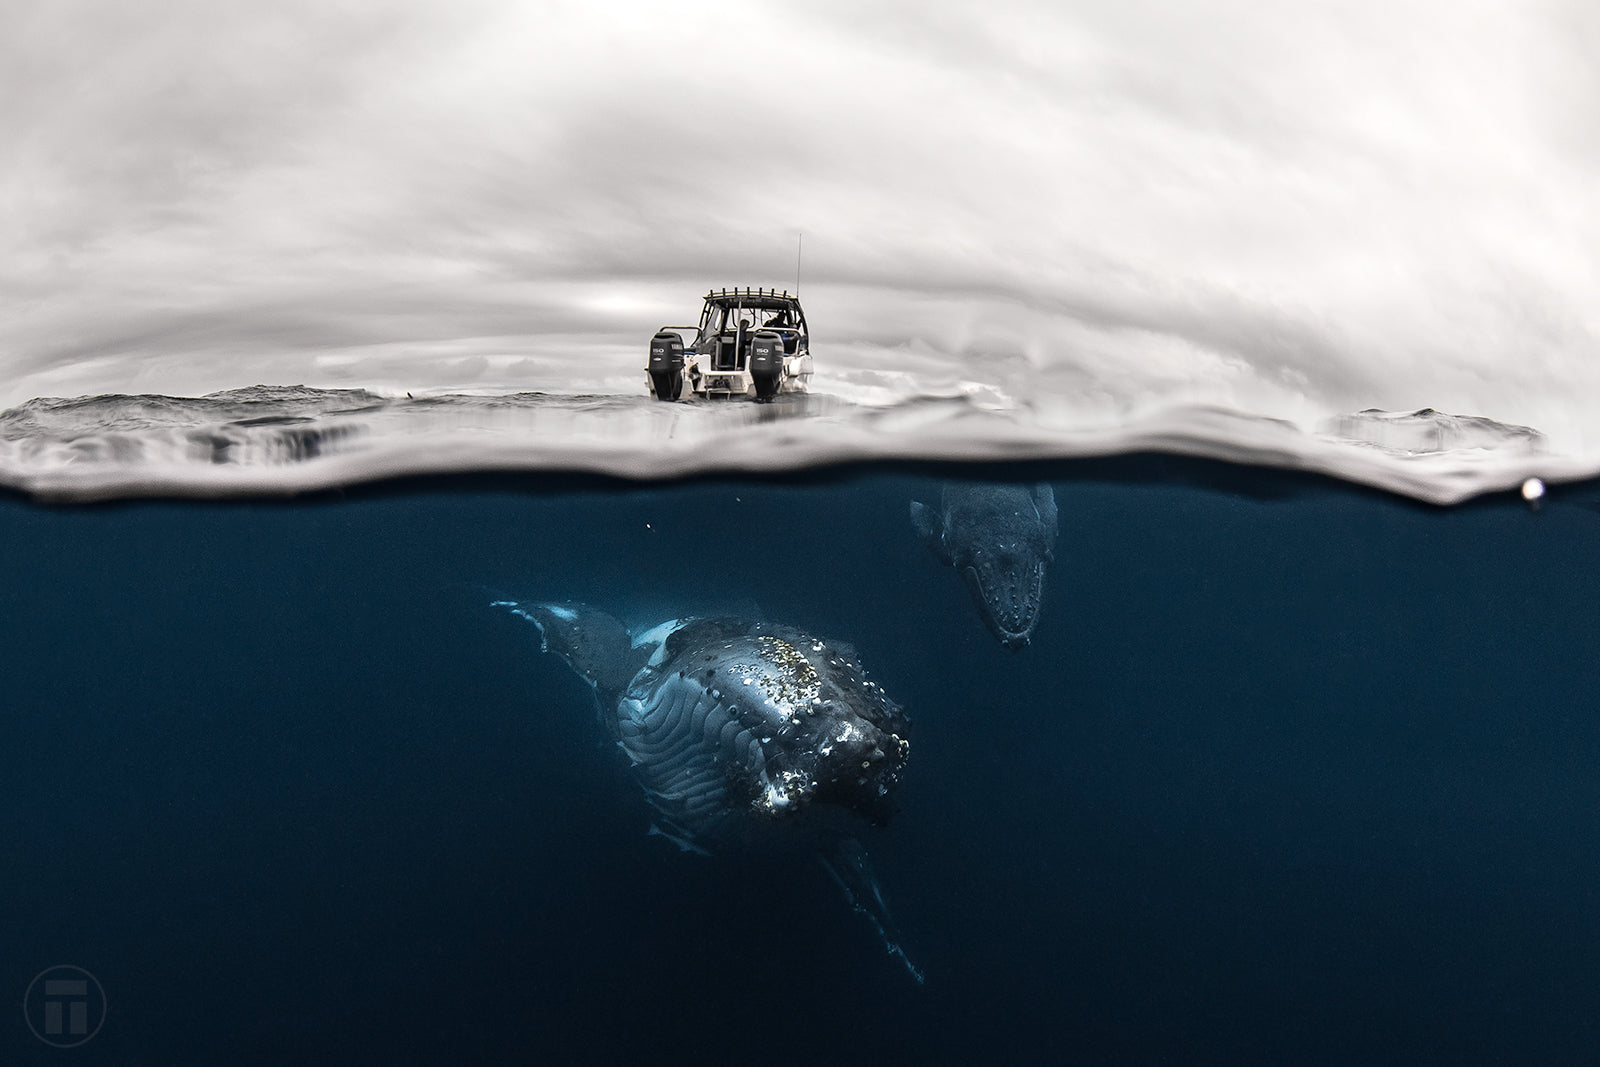 Whales Underwater with Thurston Photo